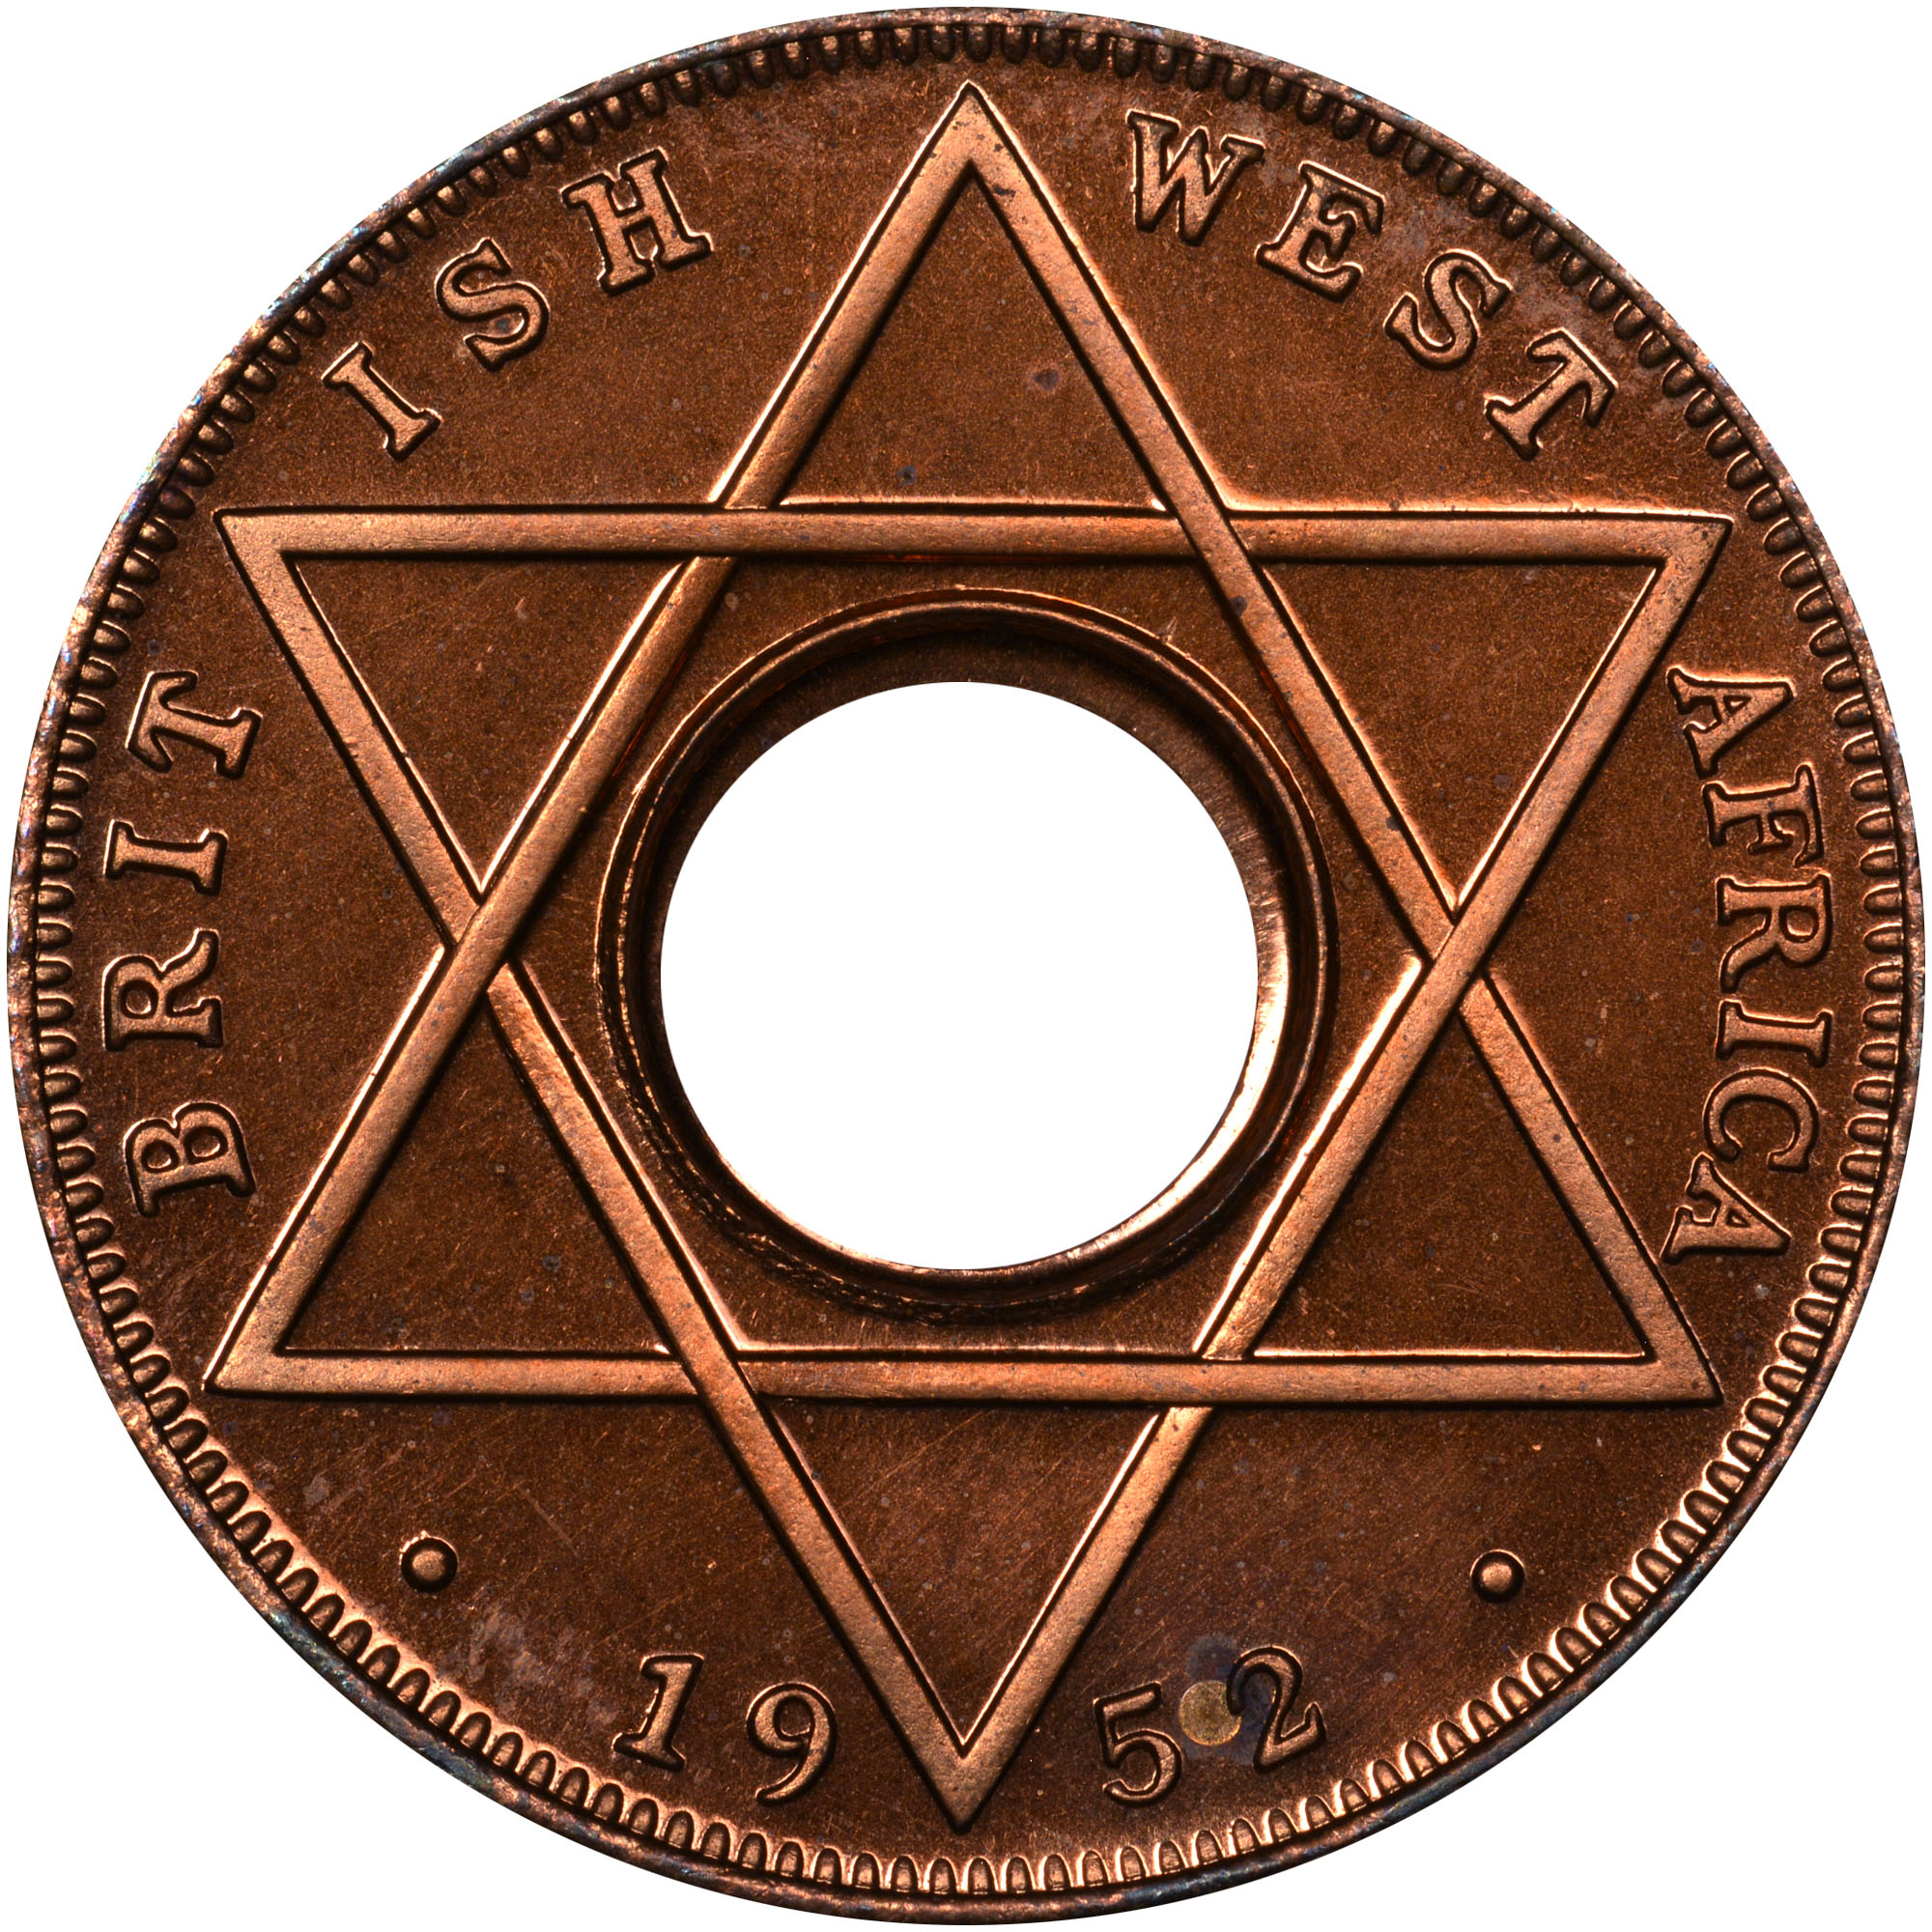 1952 British West Africa 1/10 Penny reverse